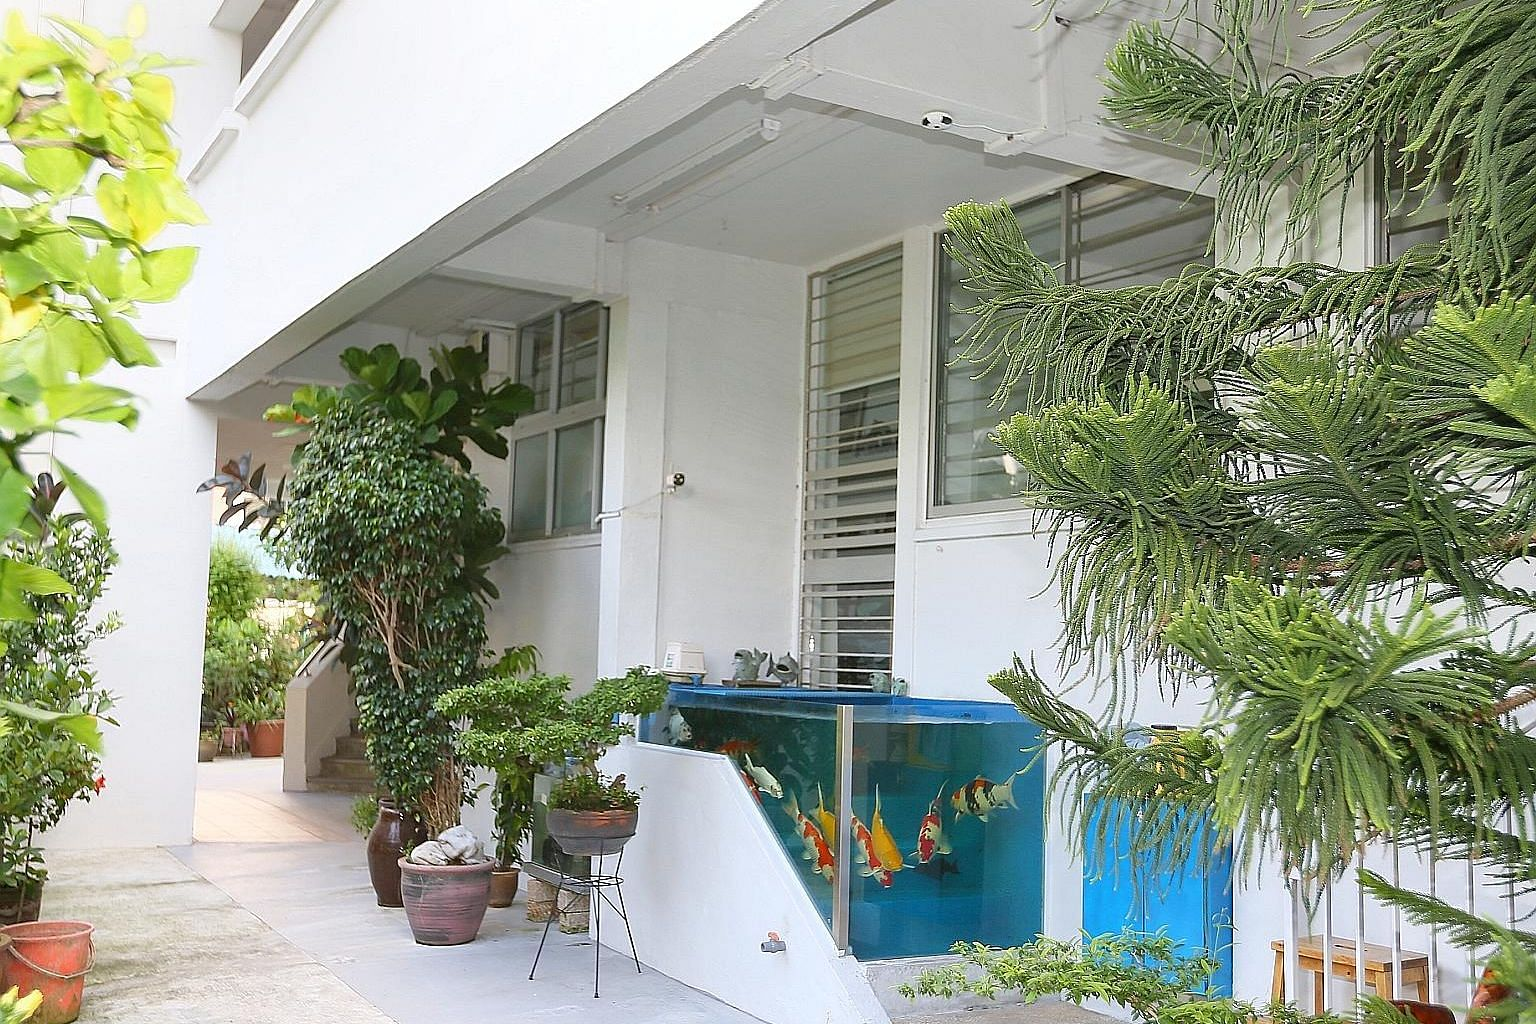 The fish tank, built on a multi-step entrance of a ground-floor flat in Tampines Street 41, contains nine koi fish and two sucker fish. Though the entrance is blocked, the residents can access their home through the adjacent unit, which is also owned